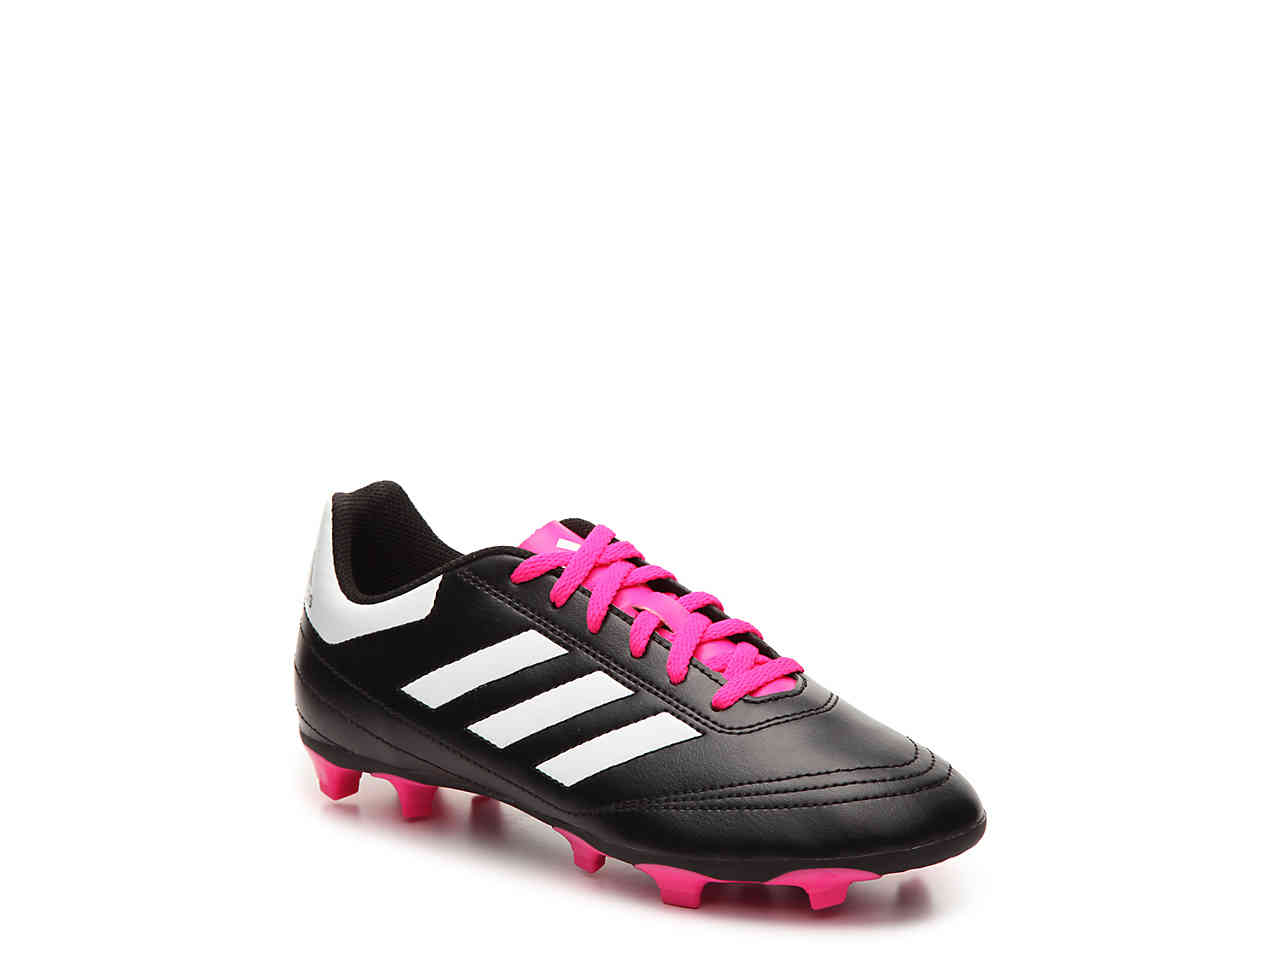 adidas youth soccer cleats